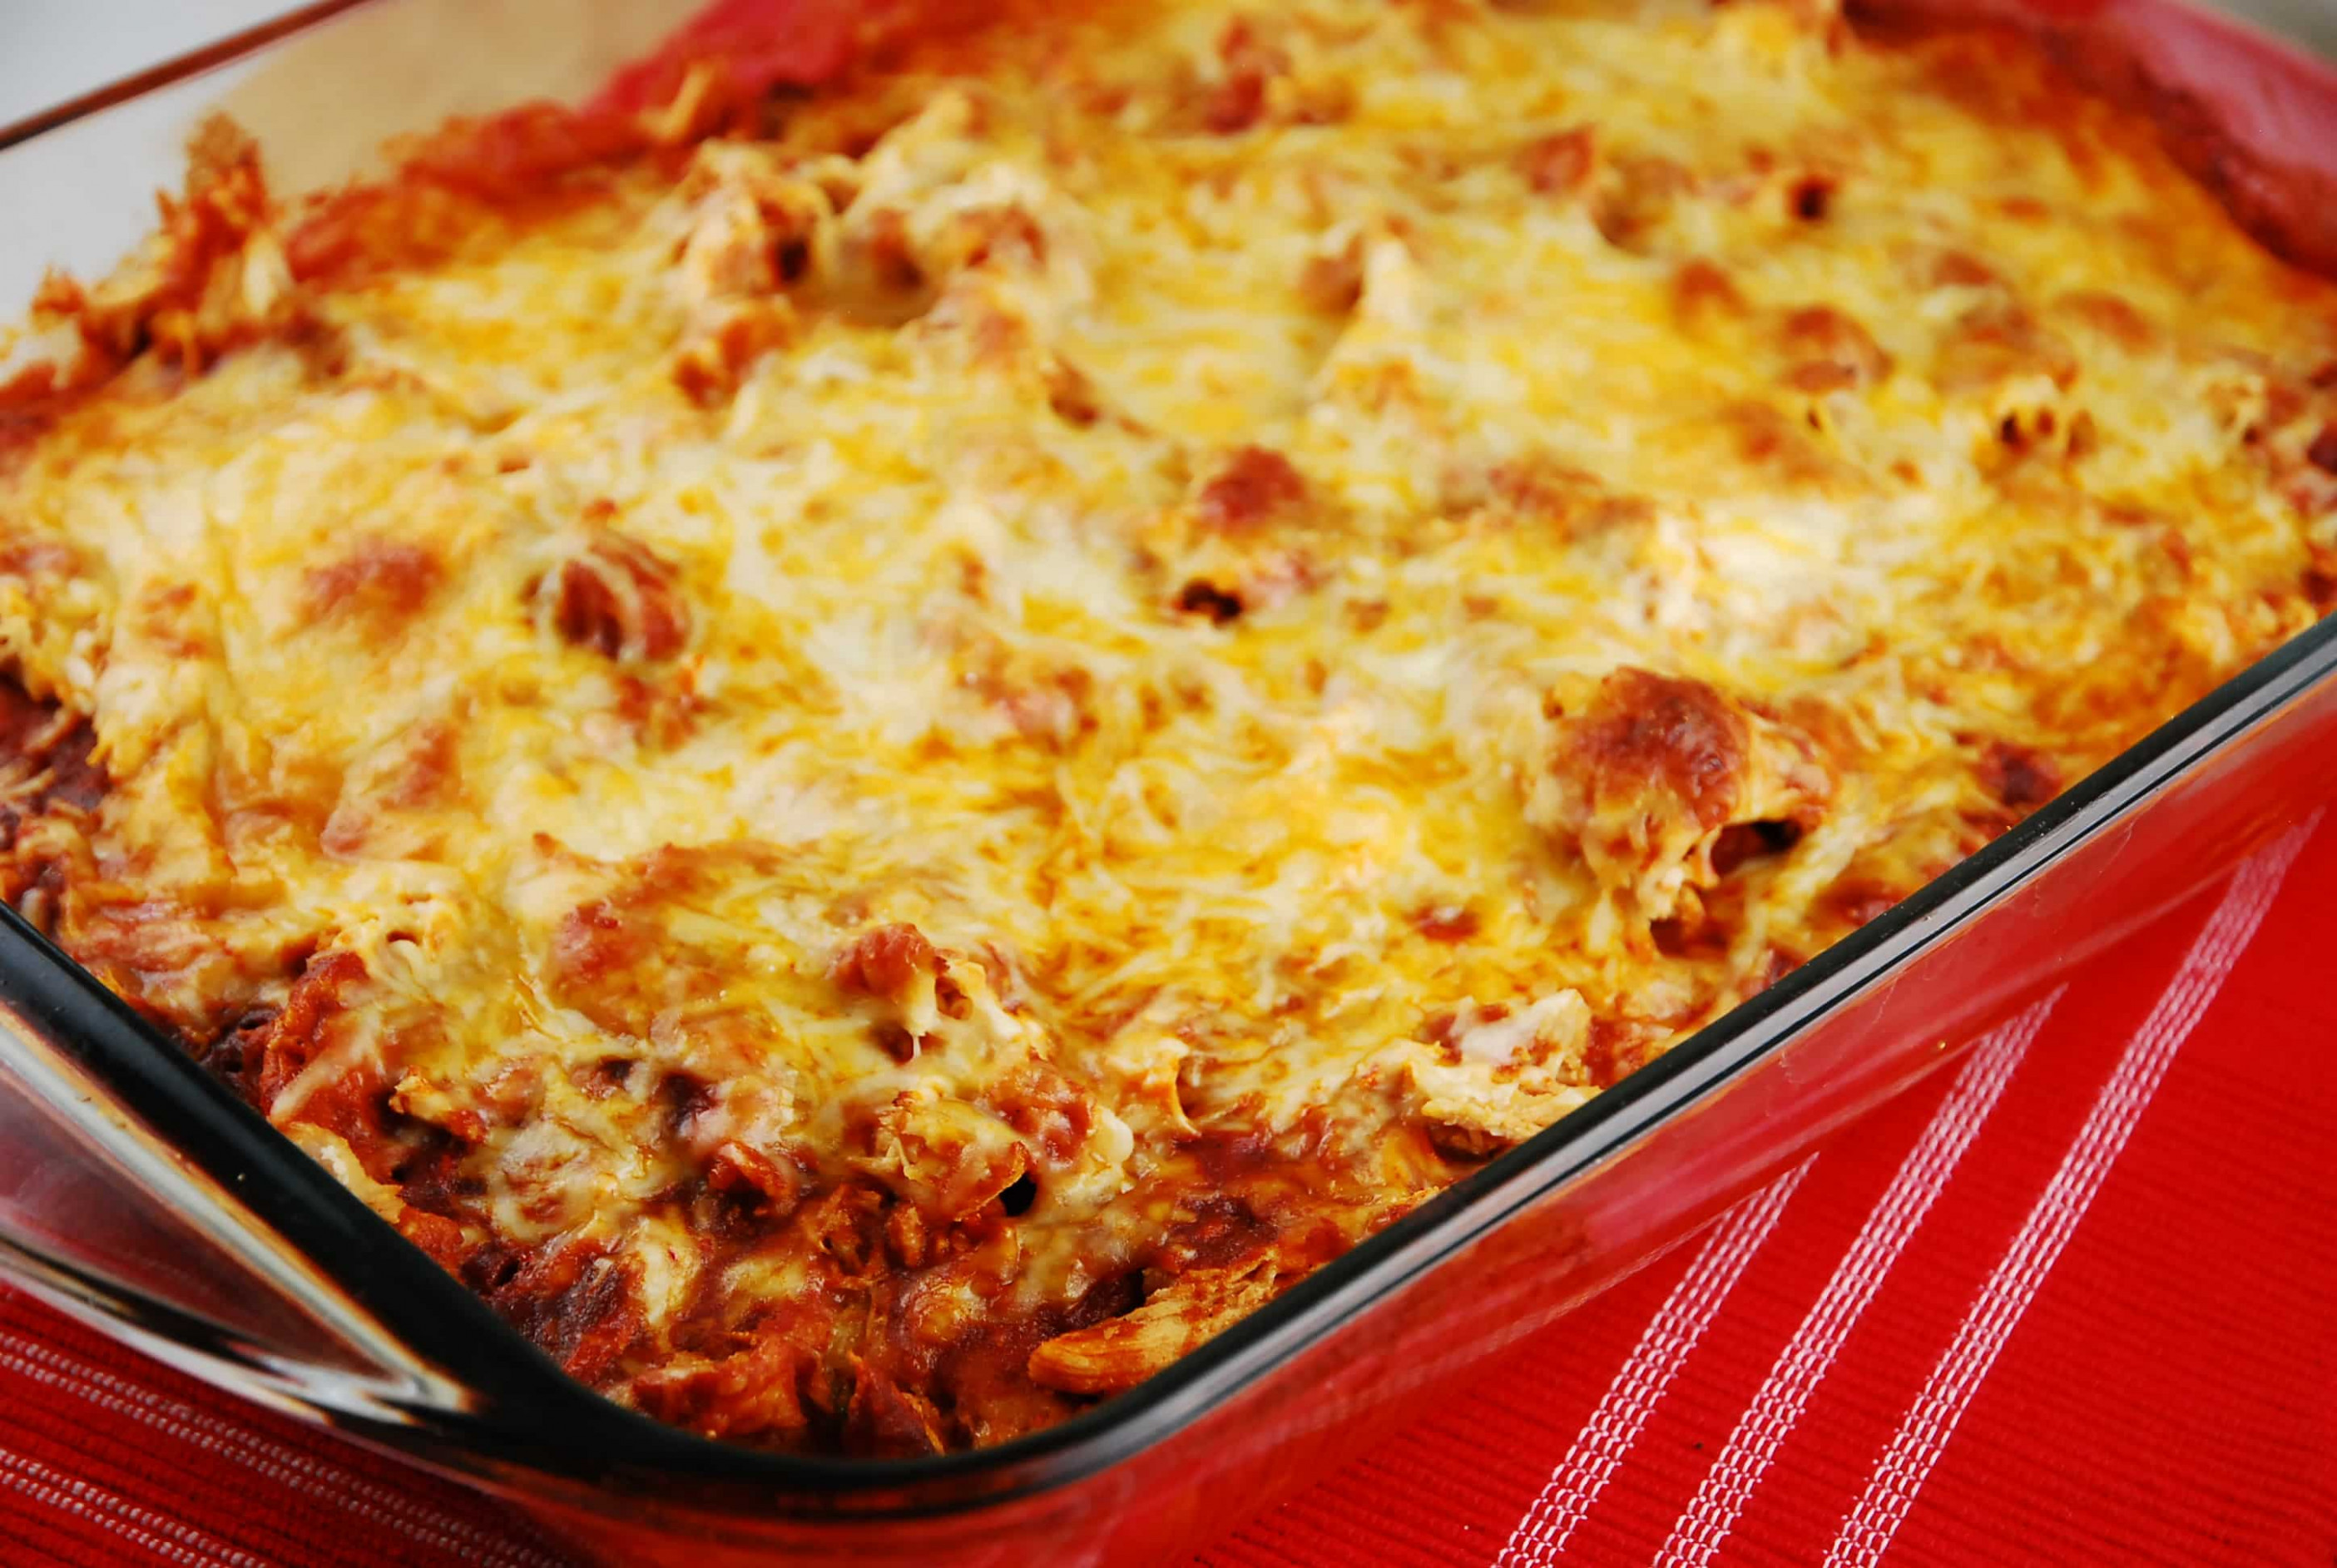 Chicken Tamale Casserole Recipe - 6 Points + - LaaLoosh